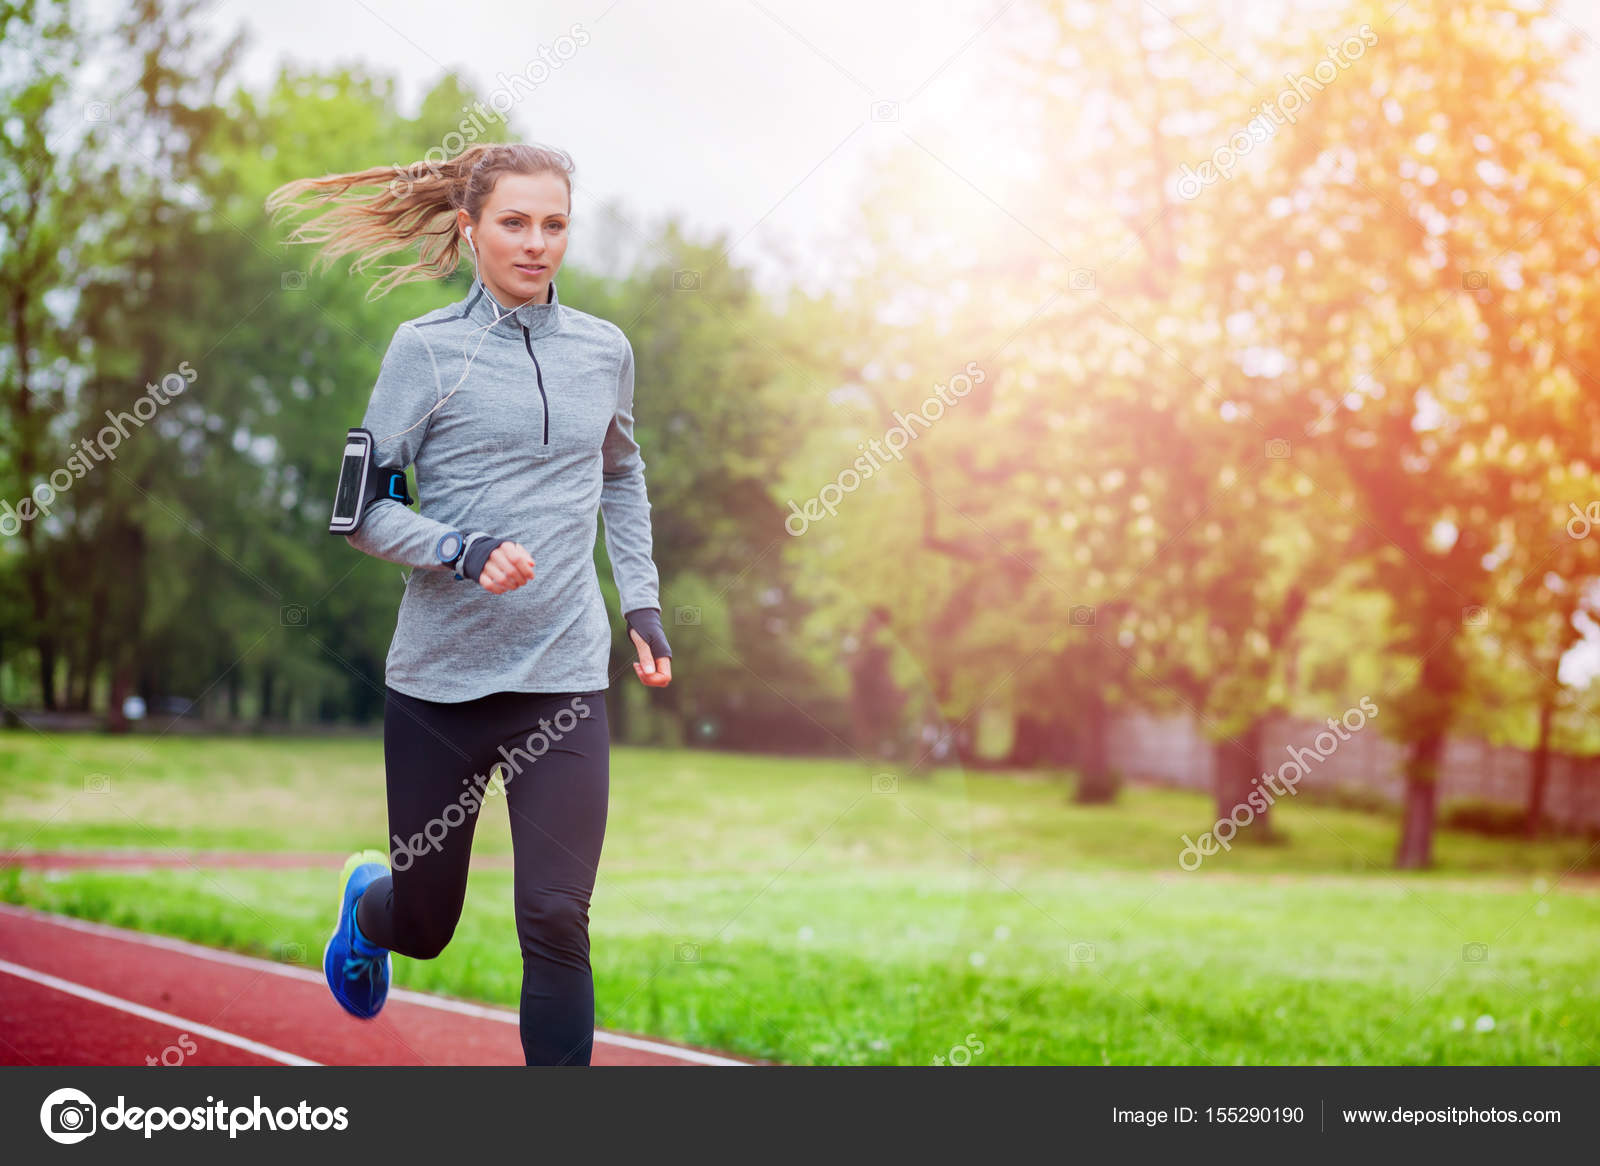 Running Jogging App Athletic Woman Running On Track With Smart Phone App And